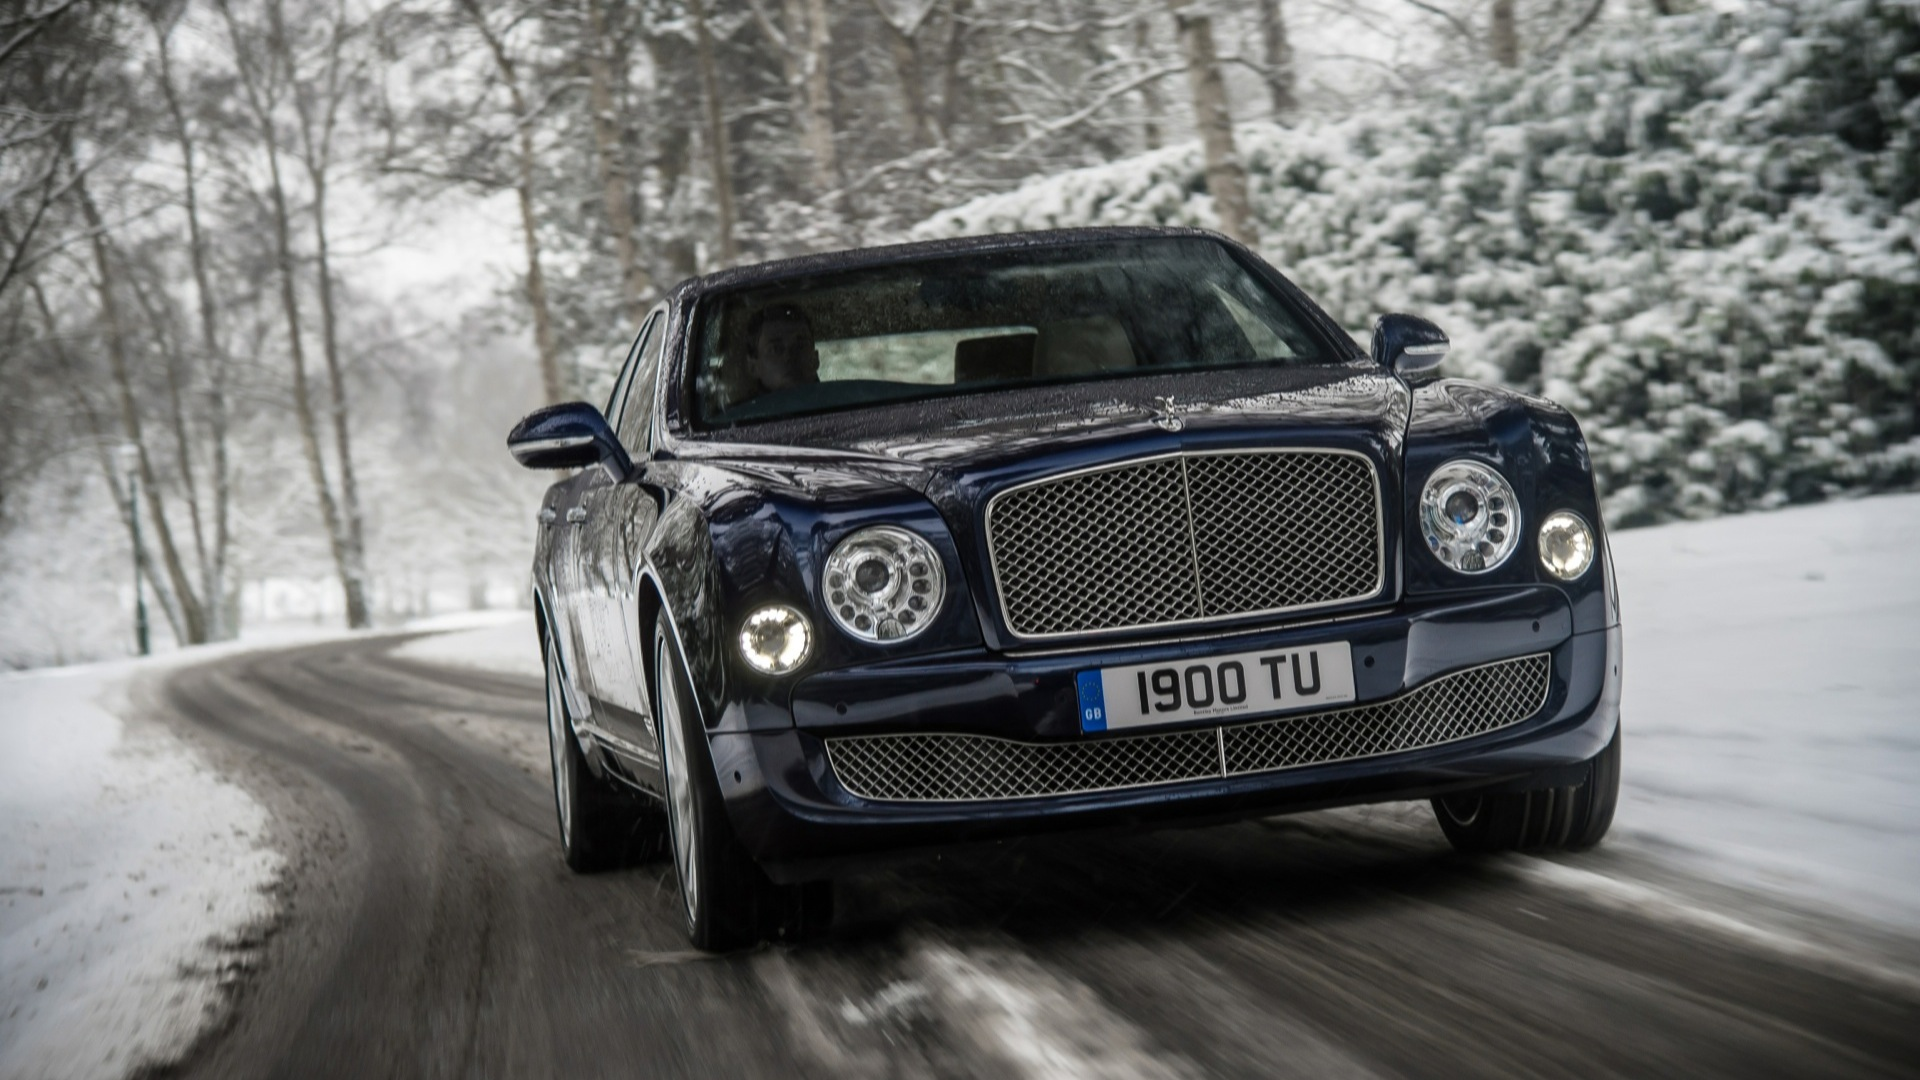 Bentley Mulsanne 2013 STD